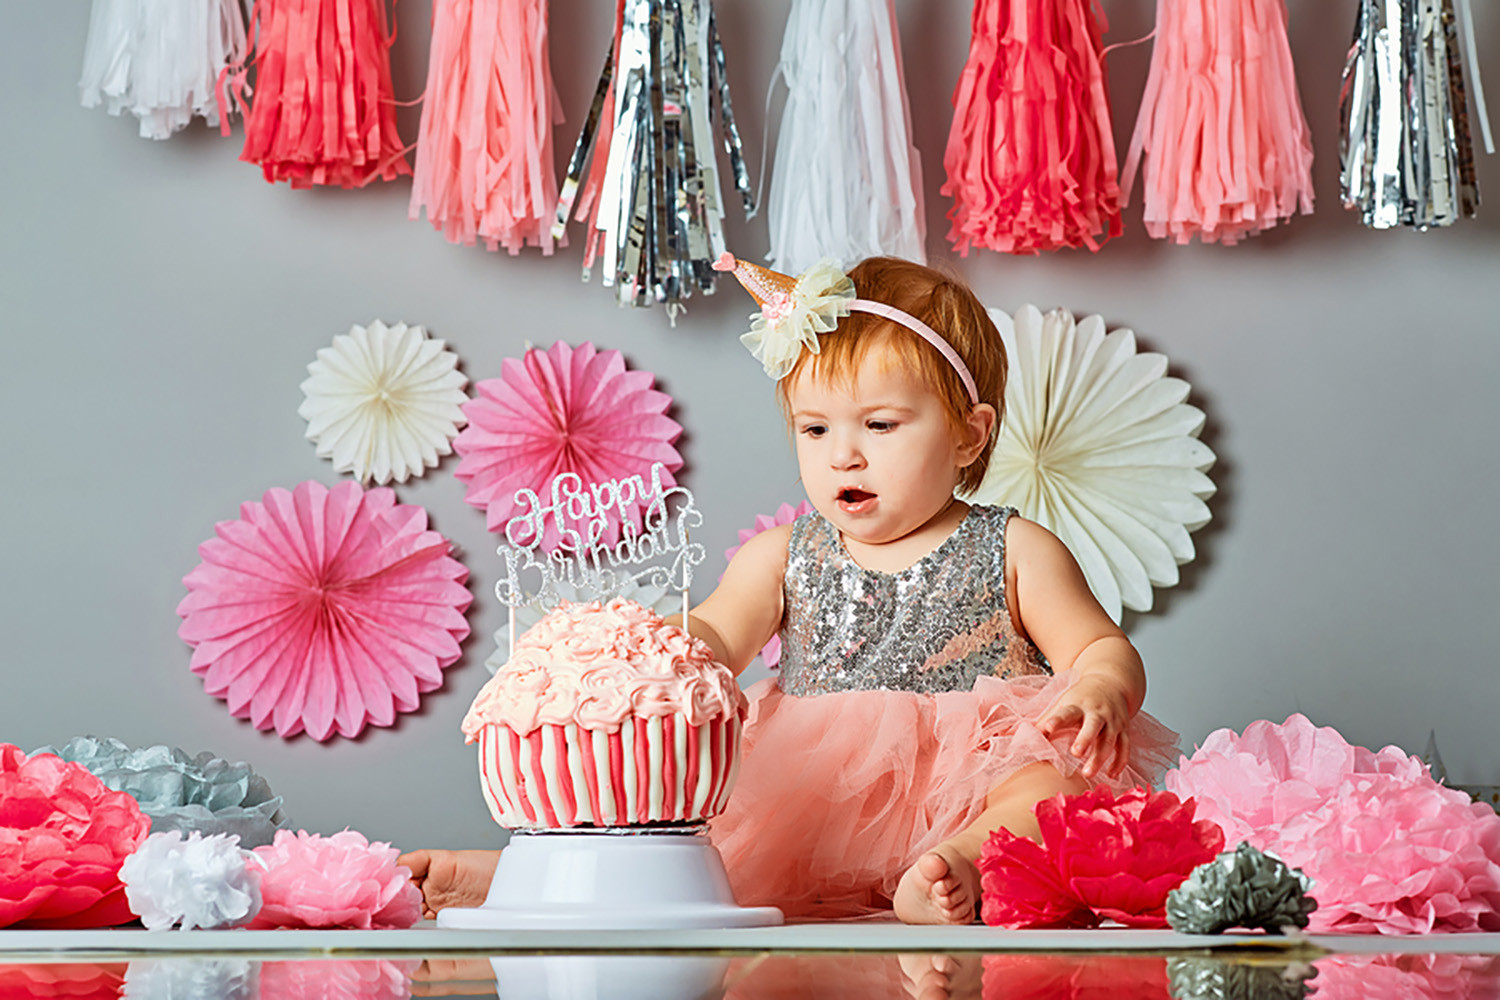 Baby Birthday Gift Ideas  Baby s 1st Birthday Gifts & Party Ideas for Boys & Girls